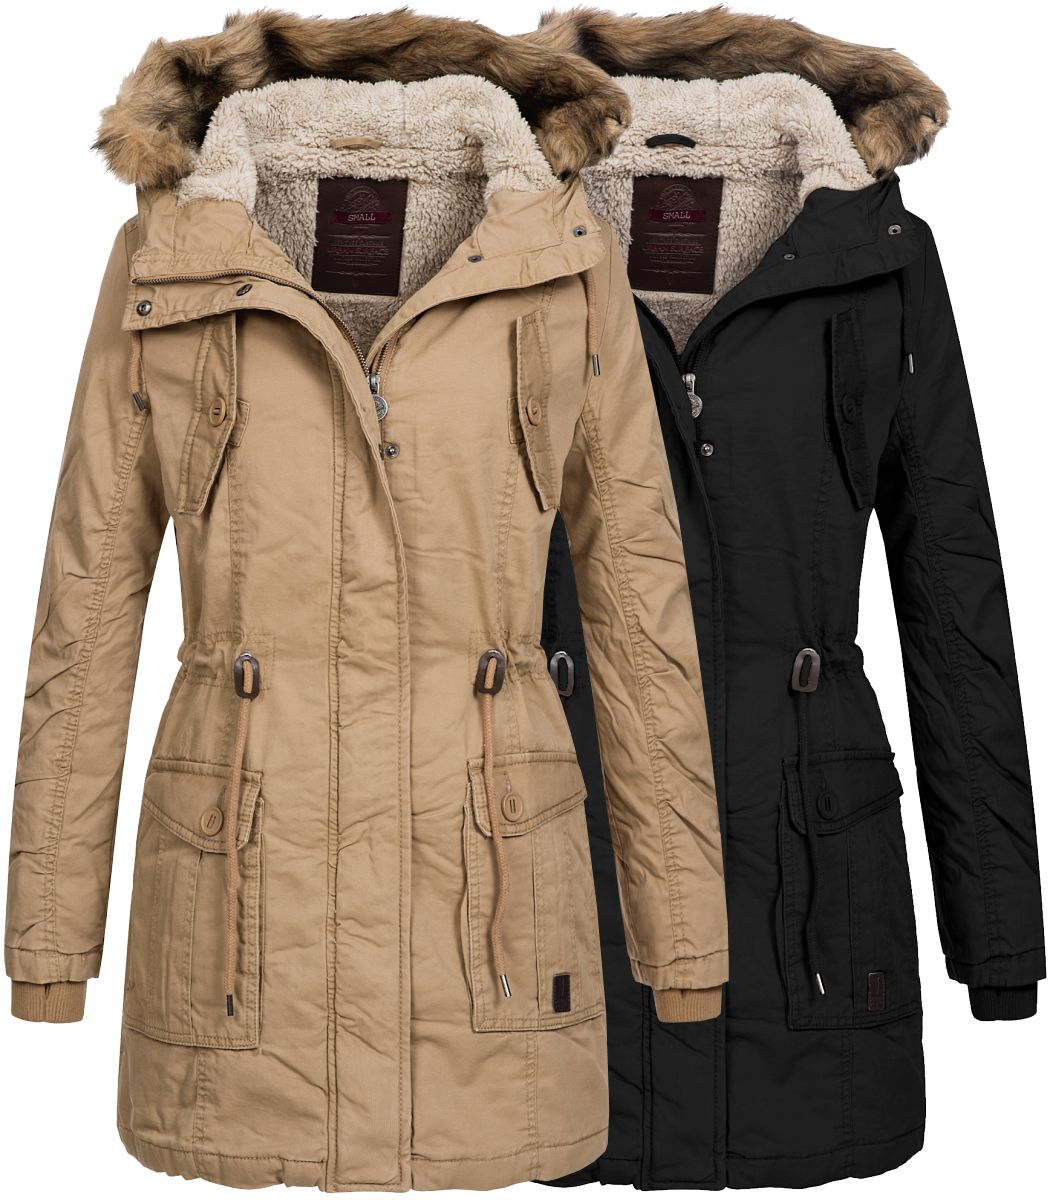 urban surface damen winterparka lus 061 damemparka damenjacke winter jacke parka. Black Bedroom Furniture Sets. Home Design Ideas